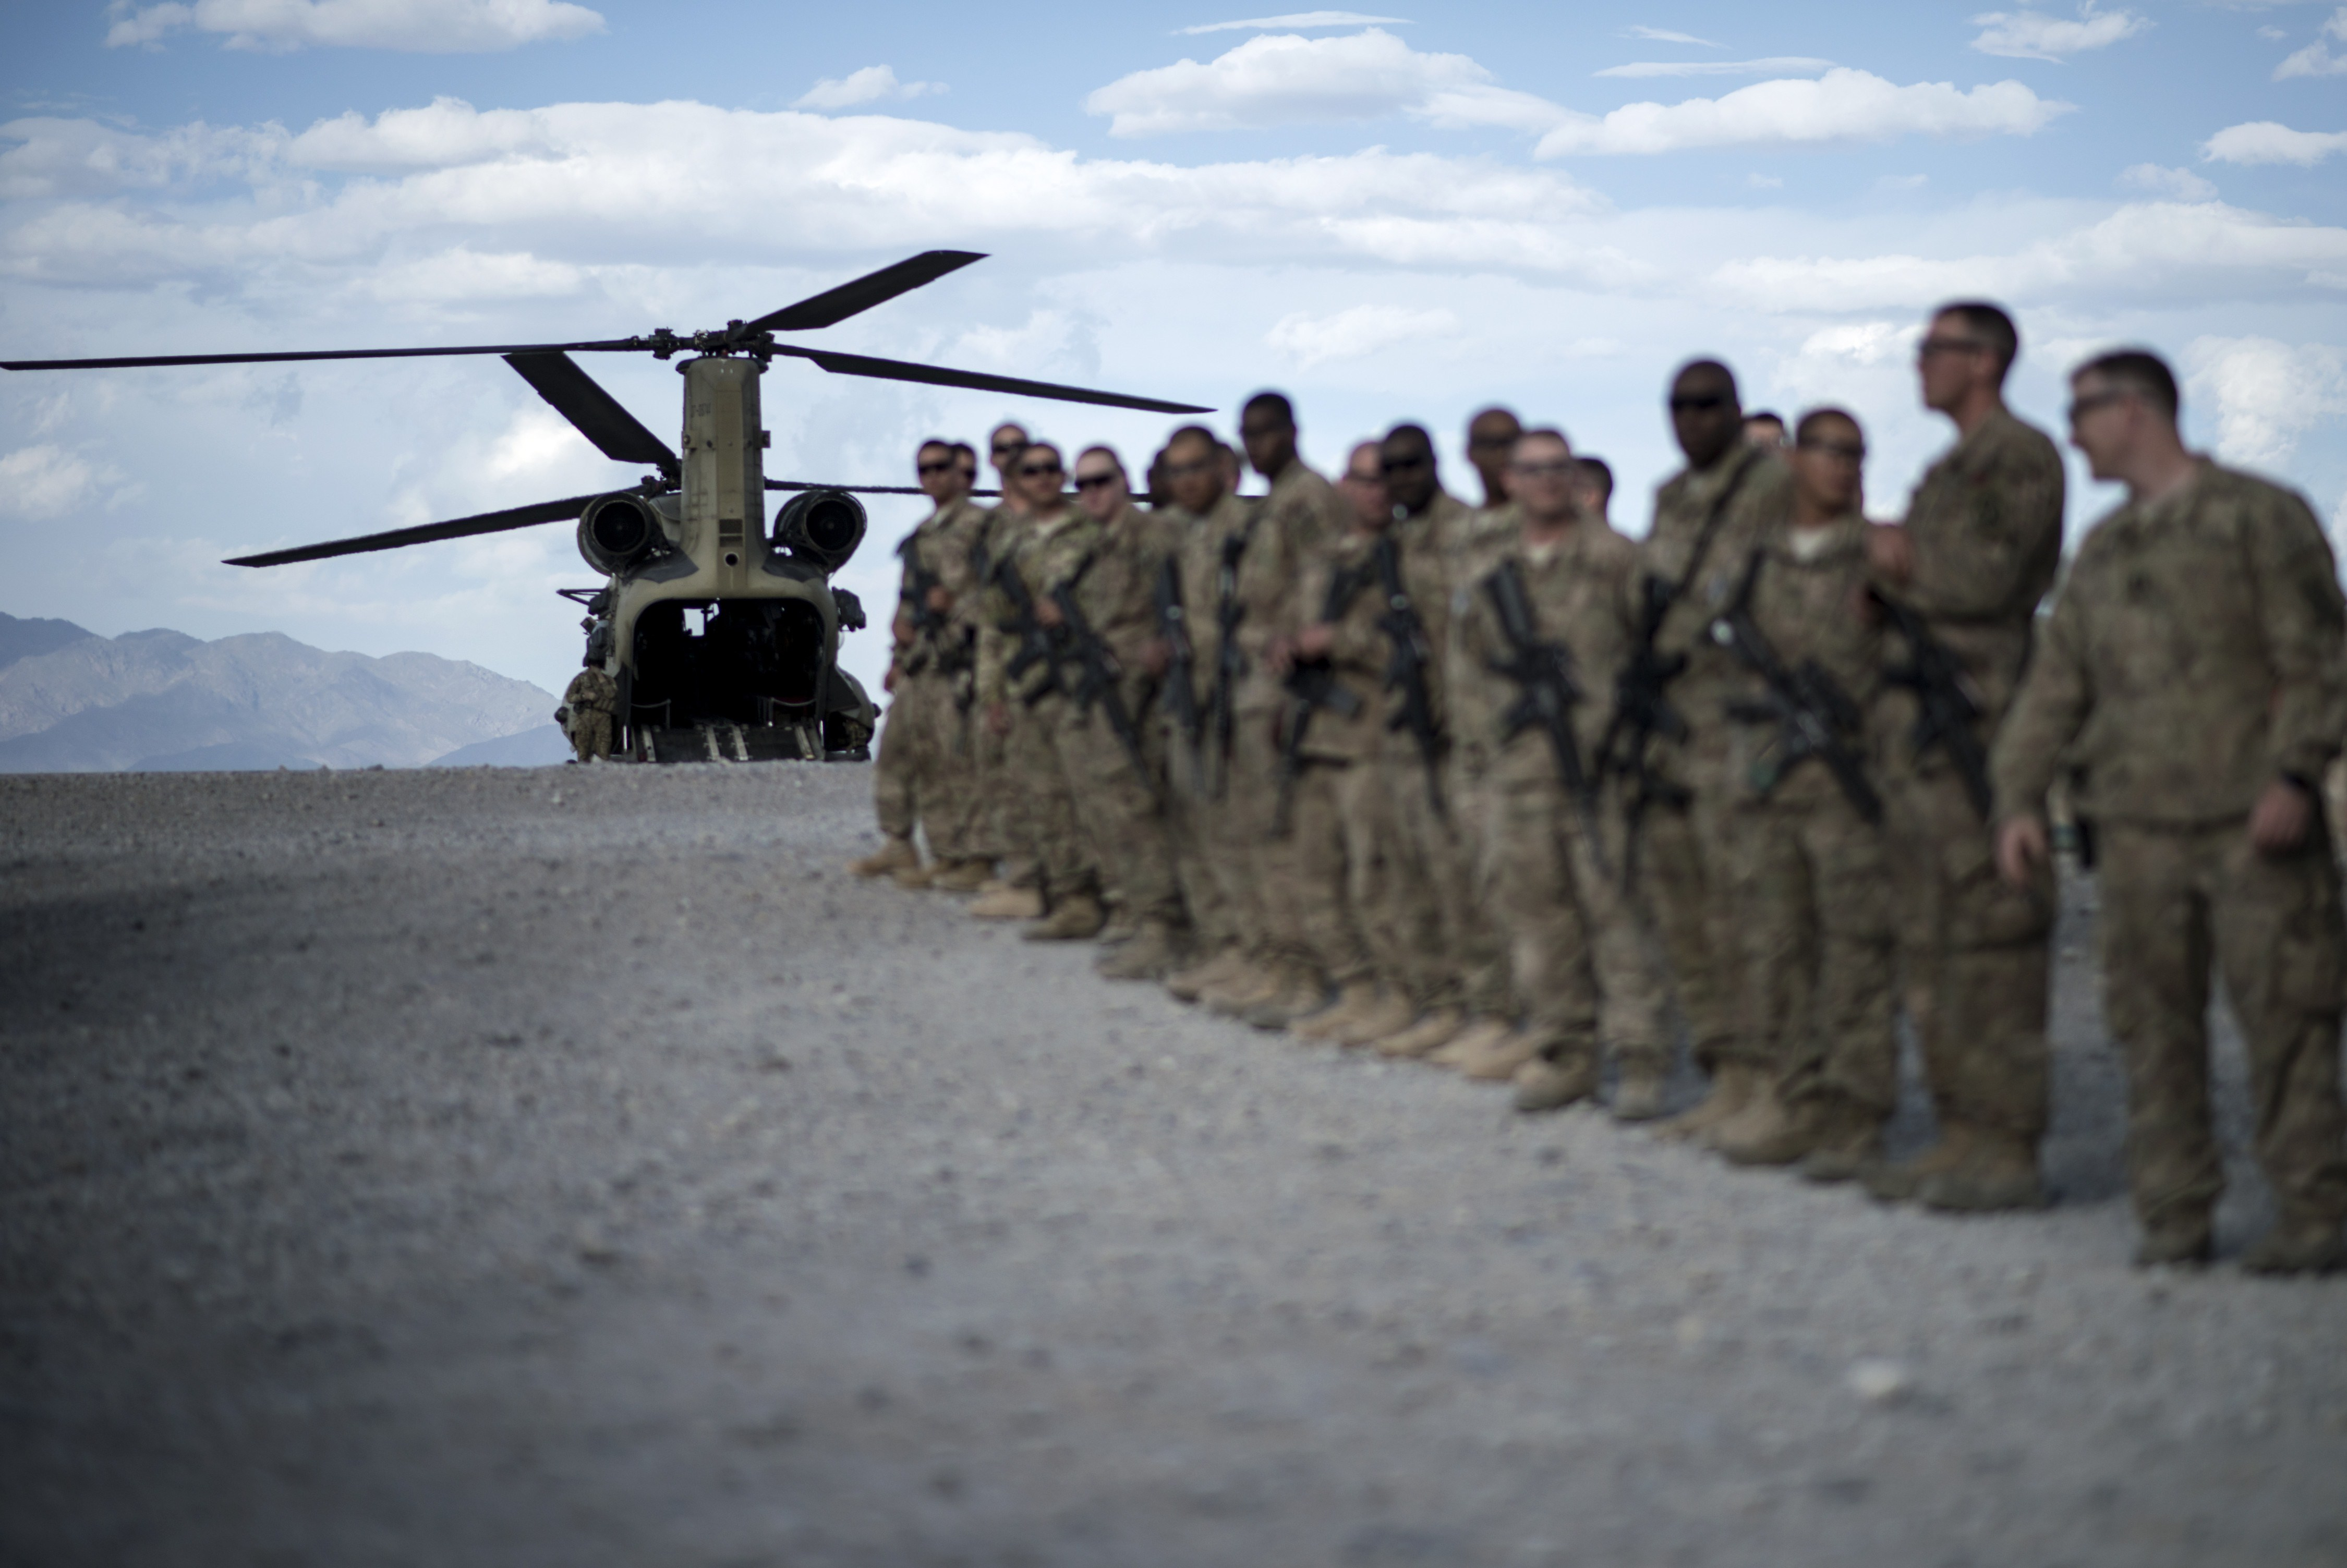 """U.S. soldiers lining up as they wait to bid farewell to wounded veterans during """"Operation Proper Exit"""" at Forward Operating Base Shank in Afghanistan's Logar Province on on May 28, 2014. (Brendan Smialowski/AFP/Getty Images)"""